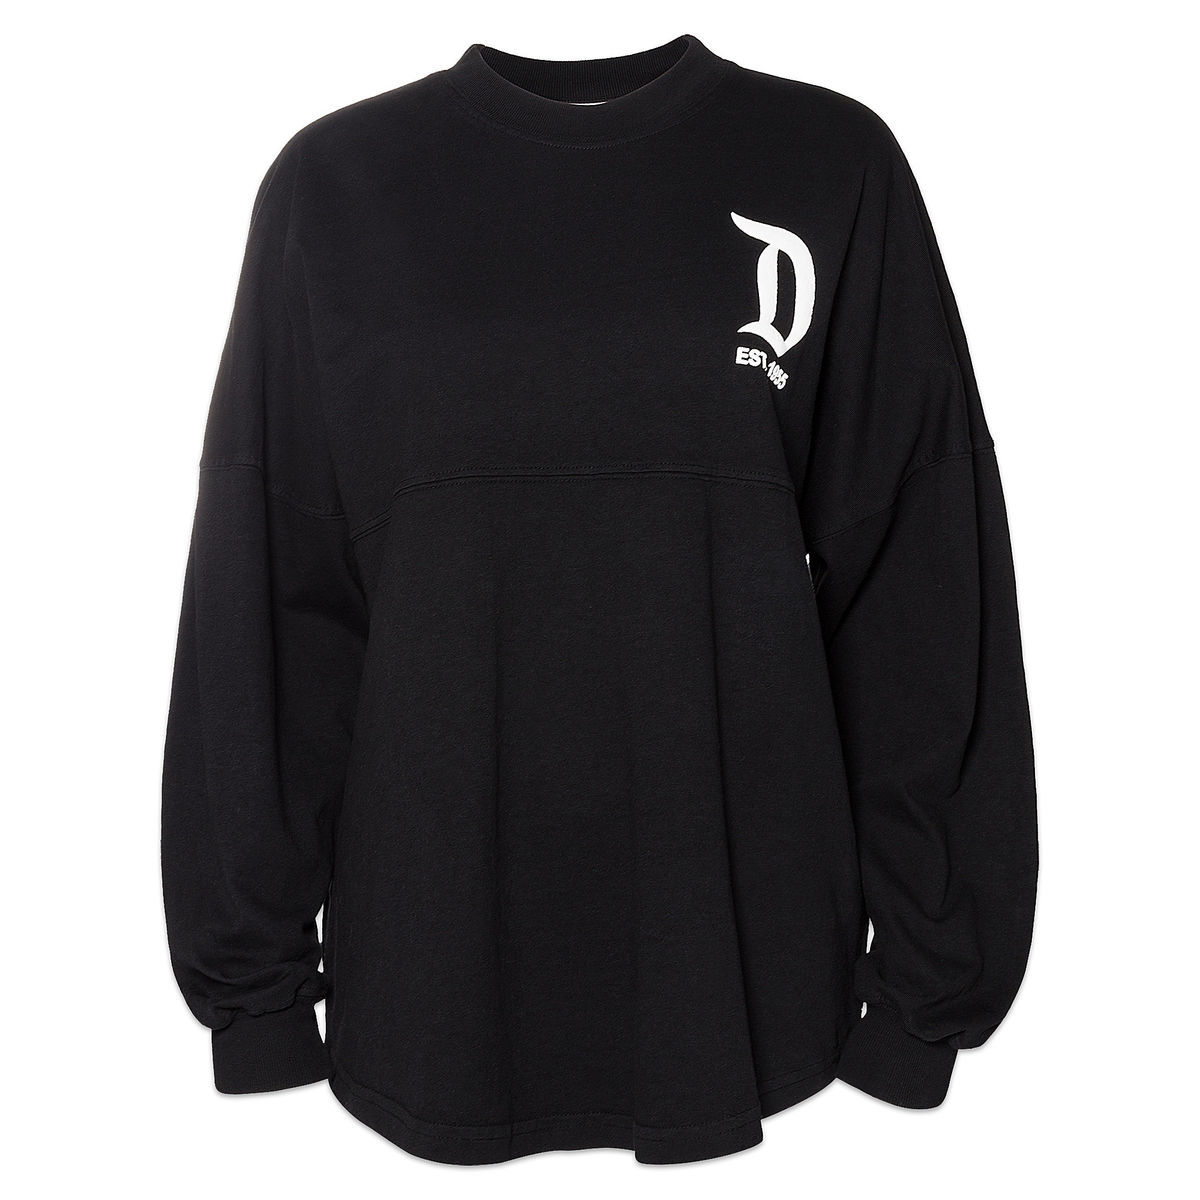 Product Image of Disneyland Spirit Jersey for Adults - Black   1 2e1cb5251